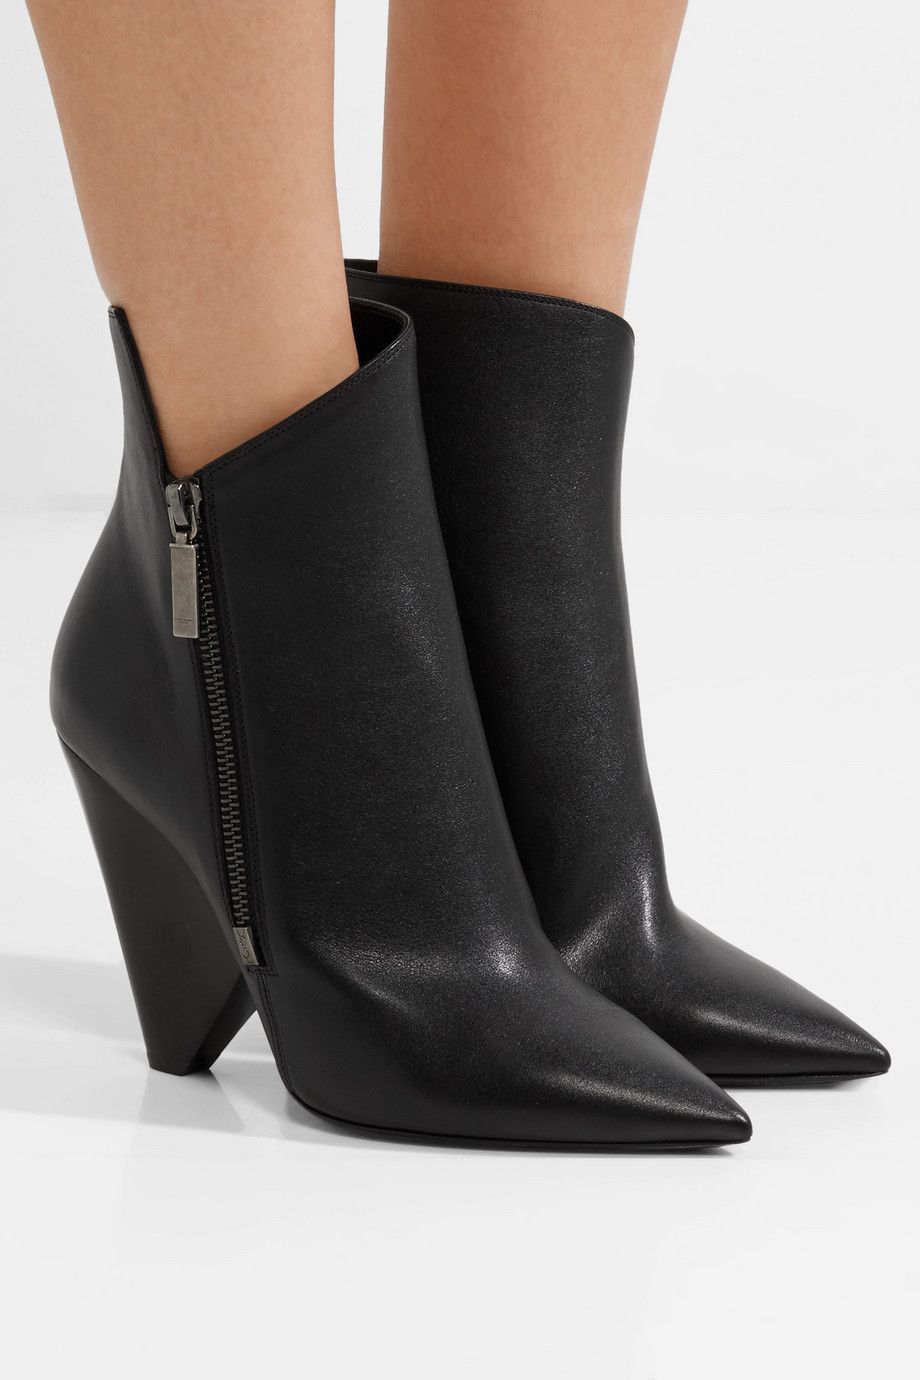 faaad4ad220 SAINT LAURENT - Niki leather ankle boots in 2019 | Shoes | Boots ...